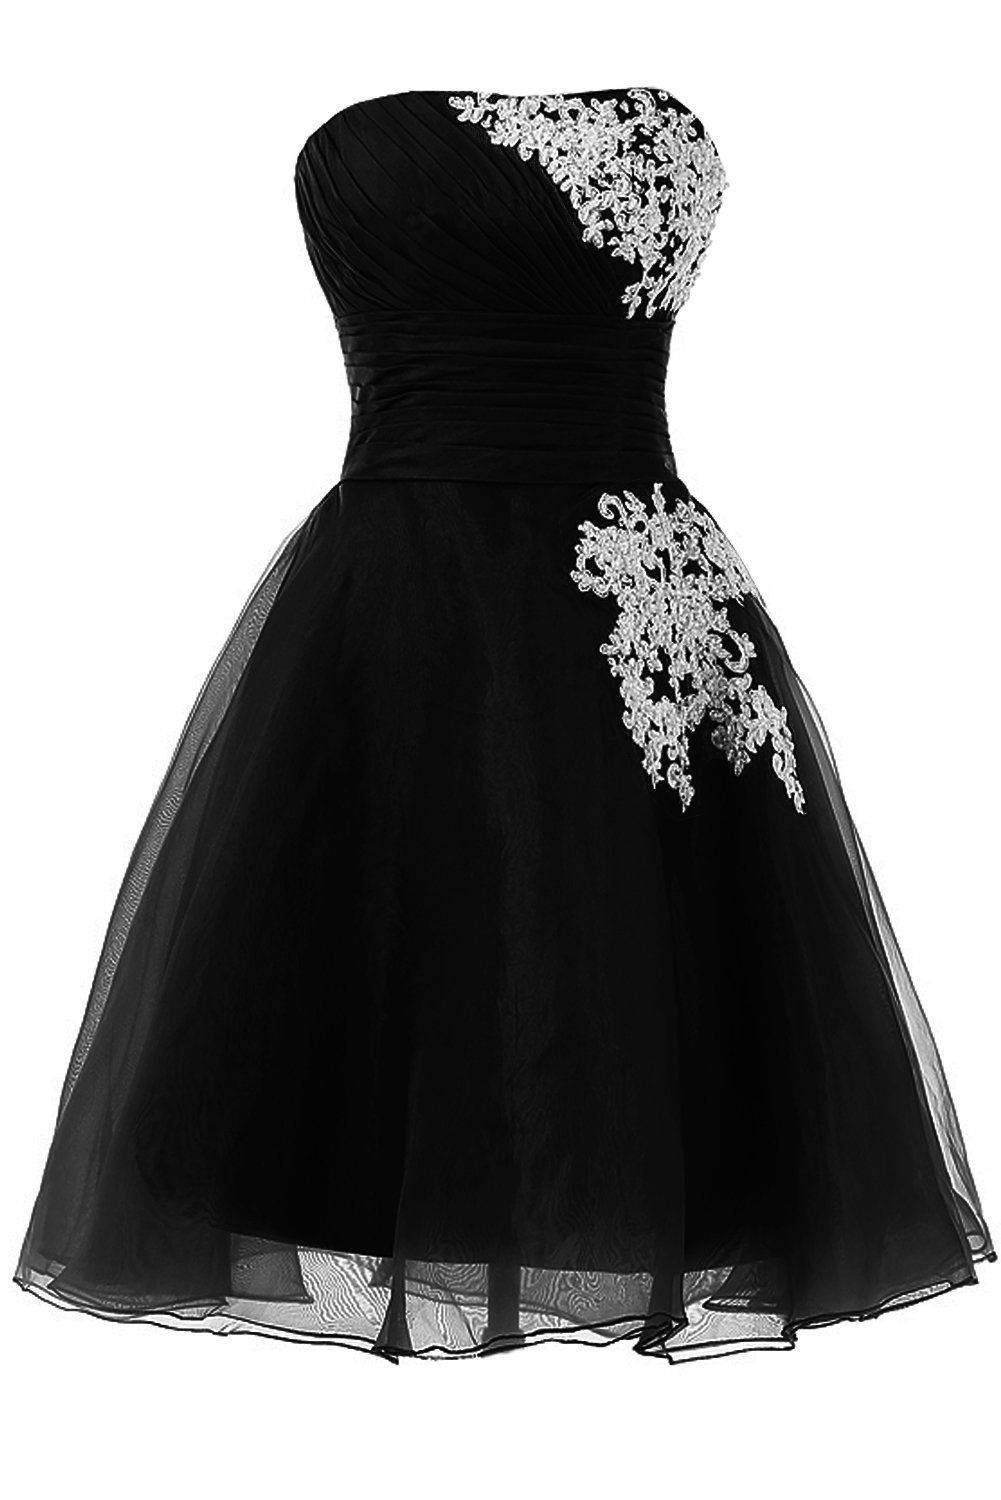 Sunvary organza and lace sweety pageant cocktail foraml dresses